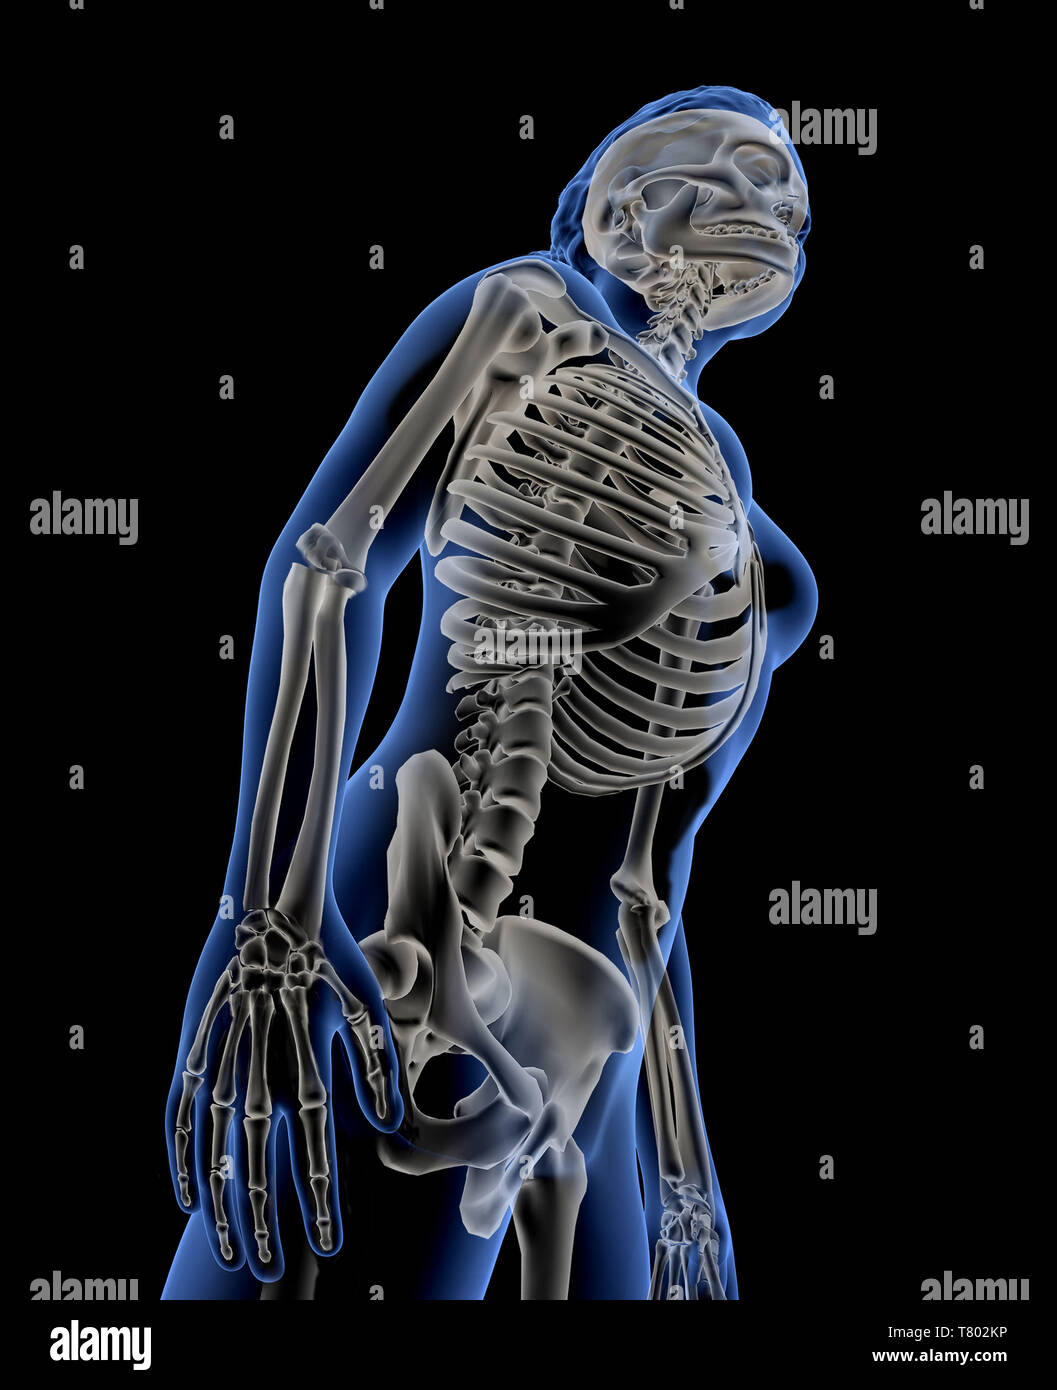 Woman with Visible Skeleton, Illustration - Stock Image